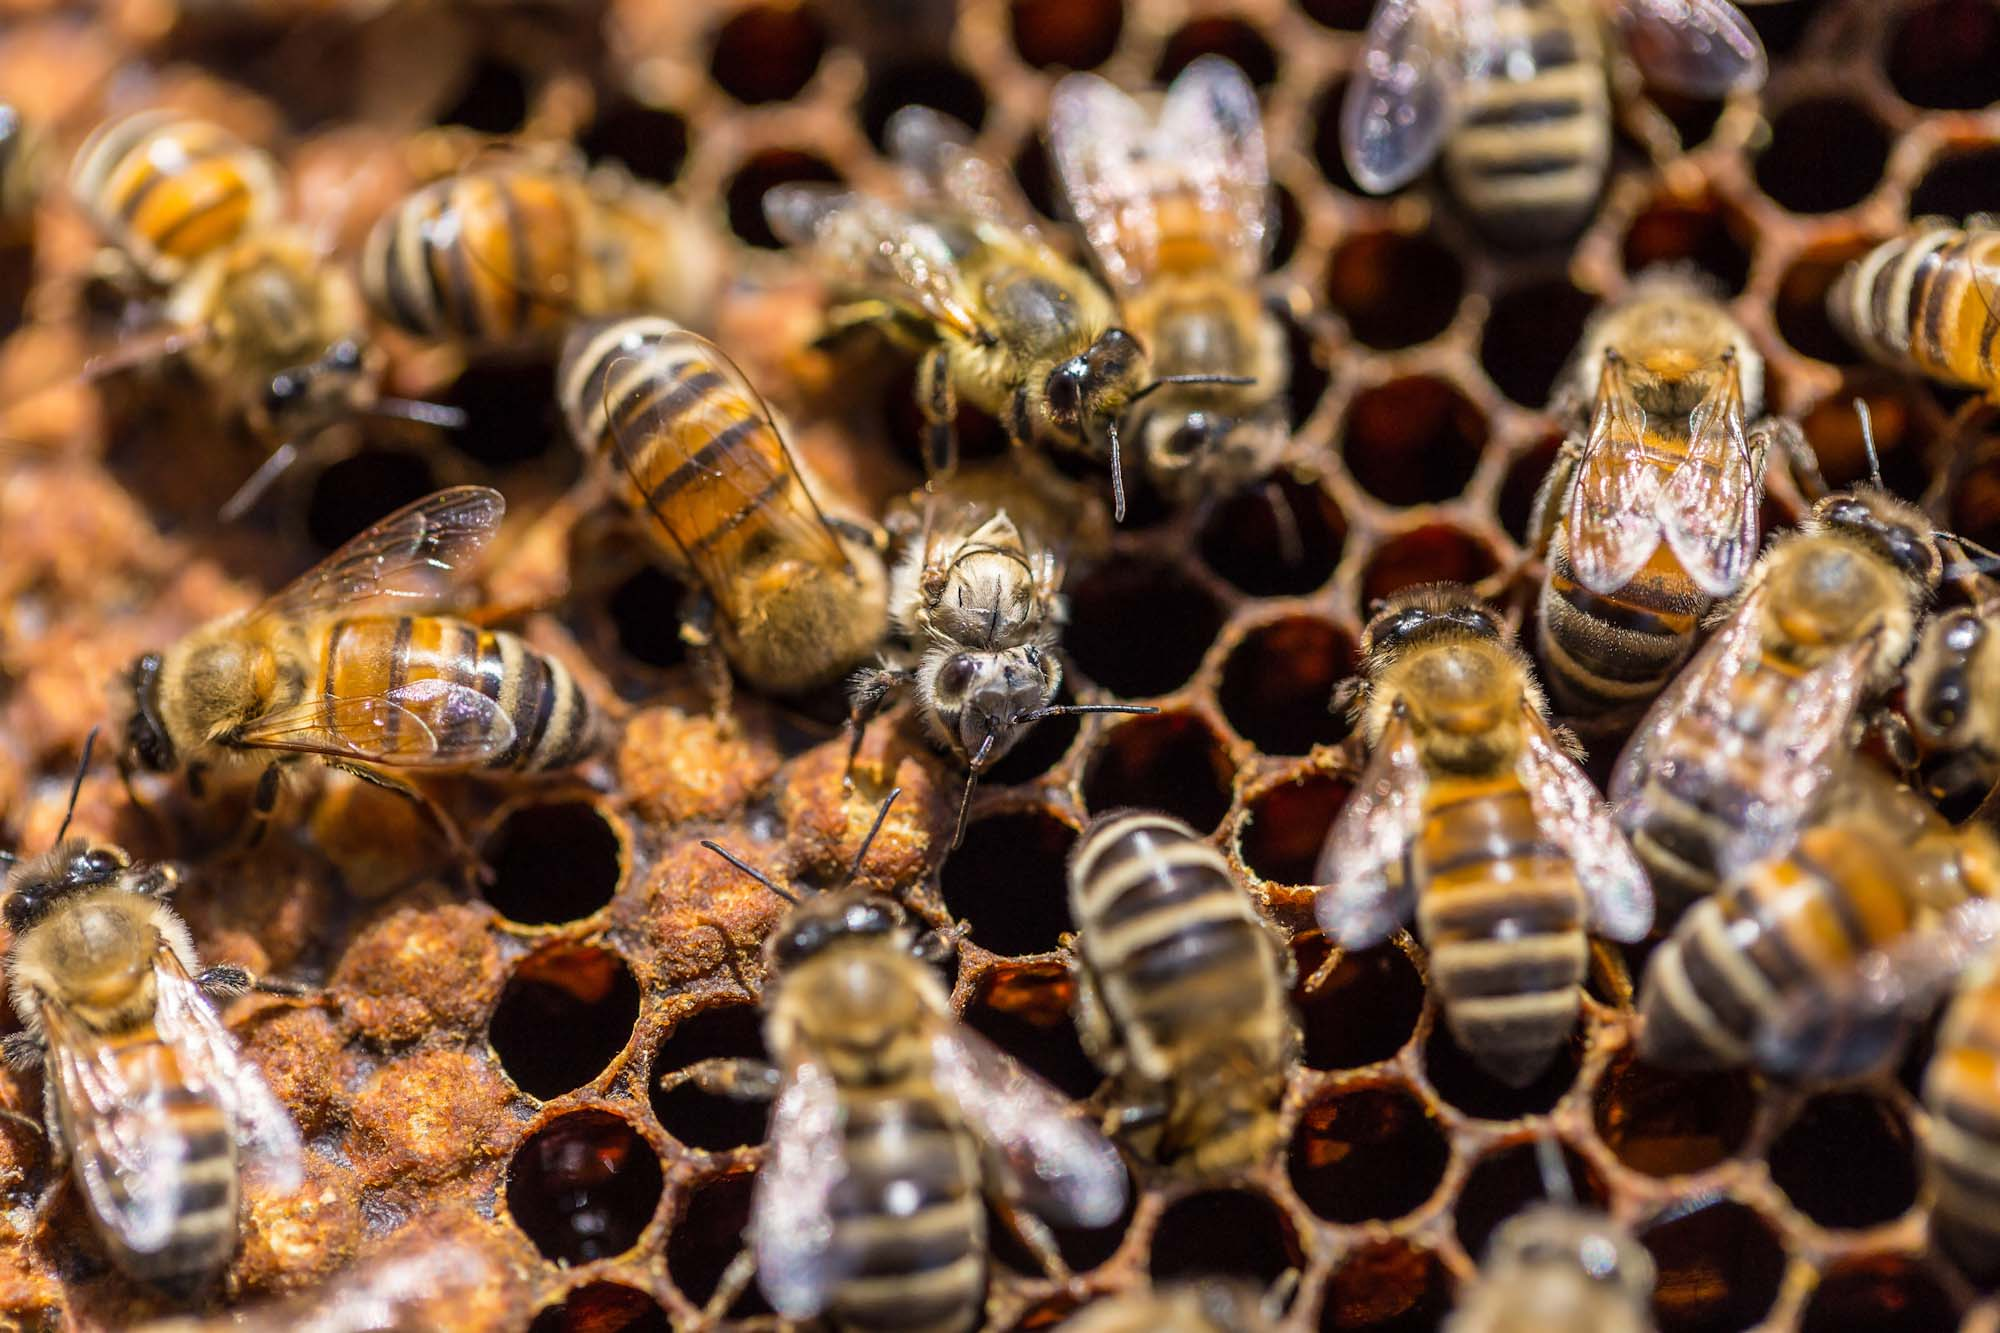 bees wax, cirebelle, sustainability, business model